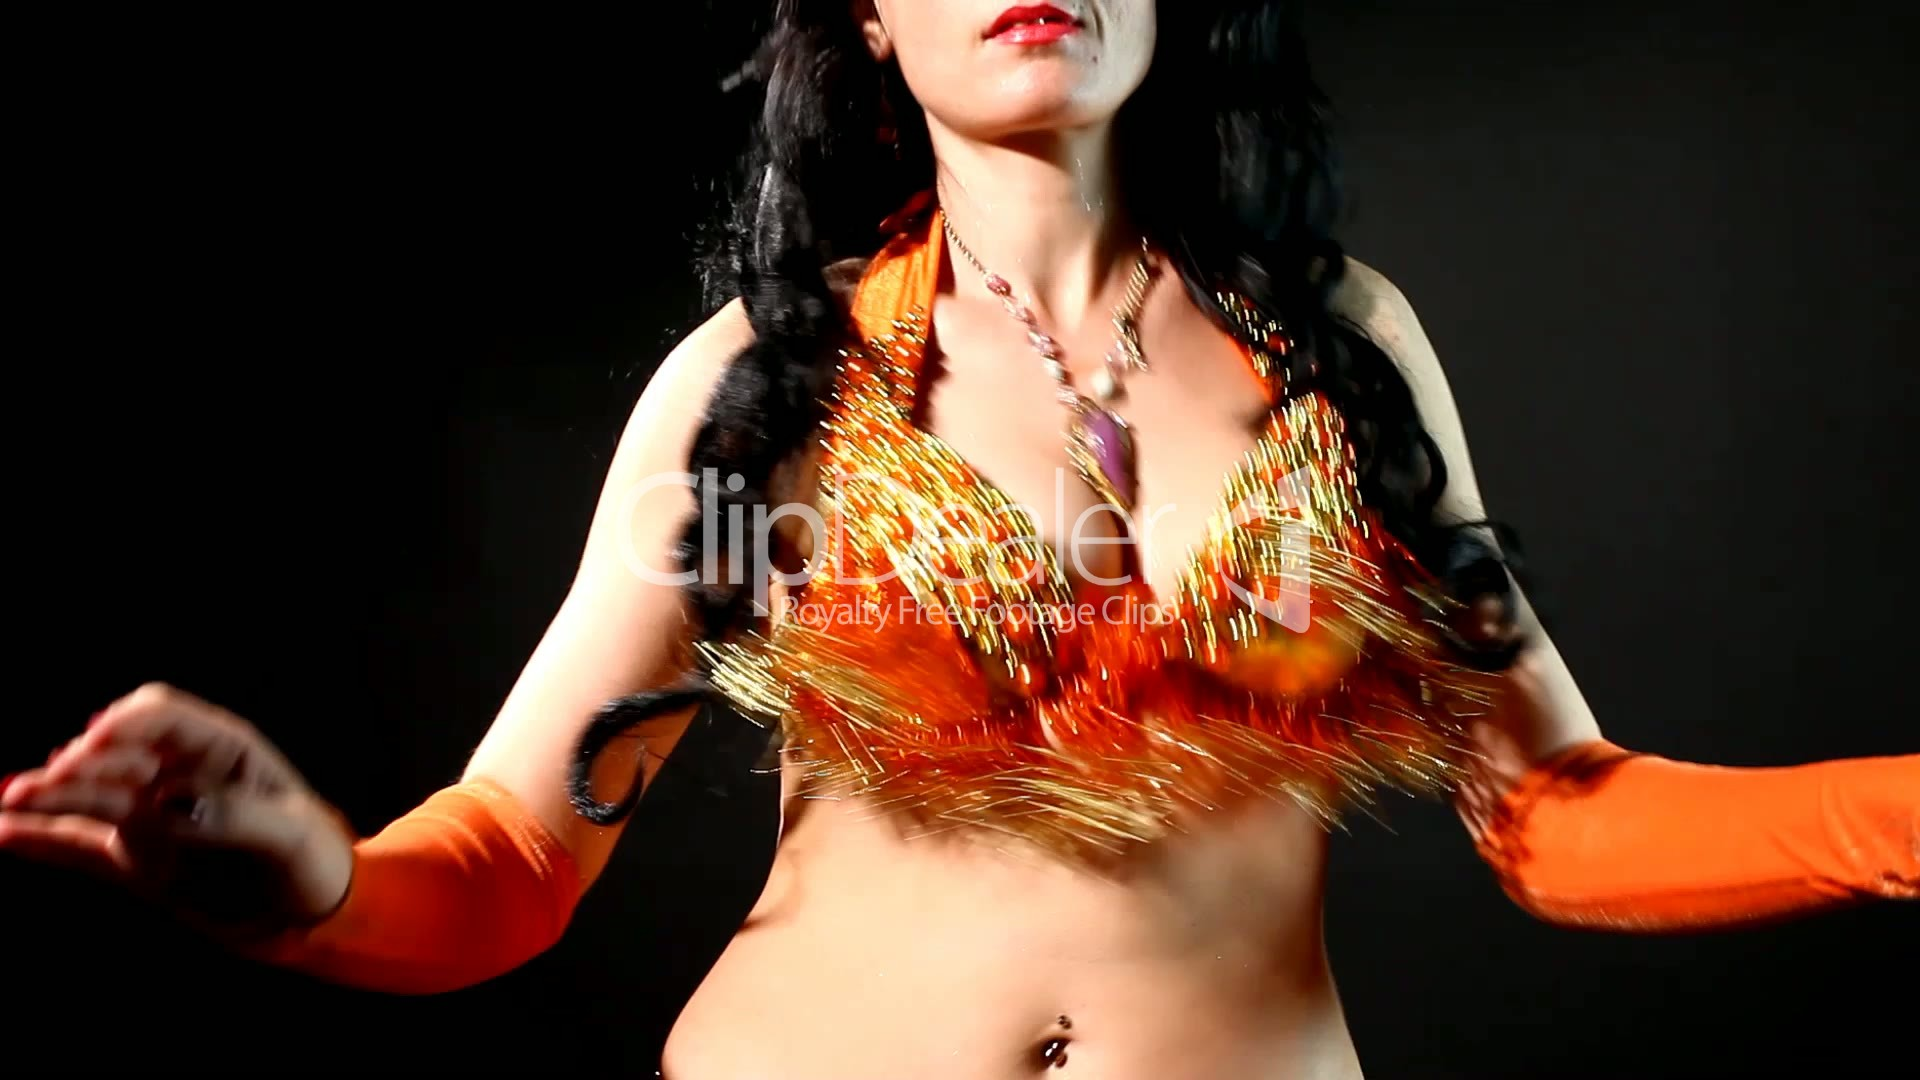 woman - belly dance - shake breast: royalty-free video and stock footage